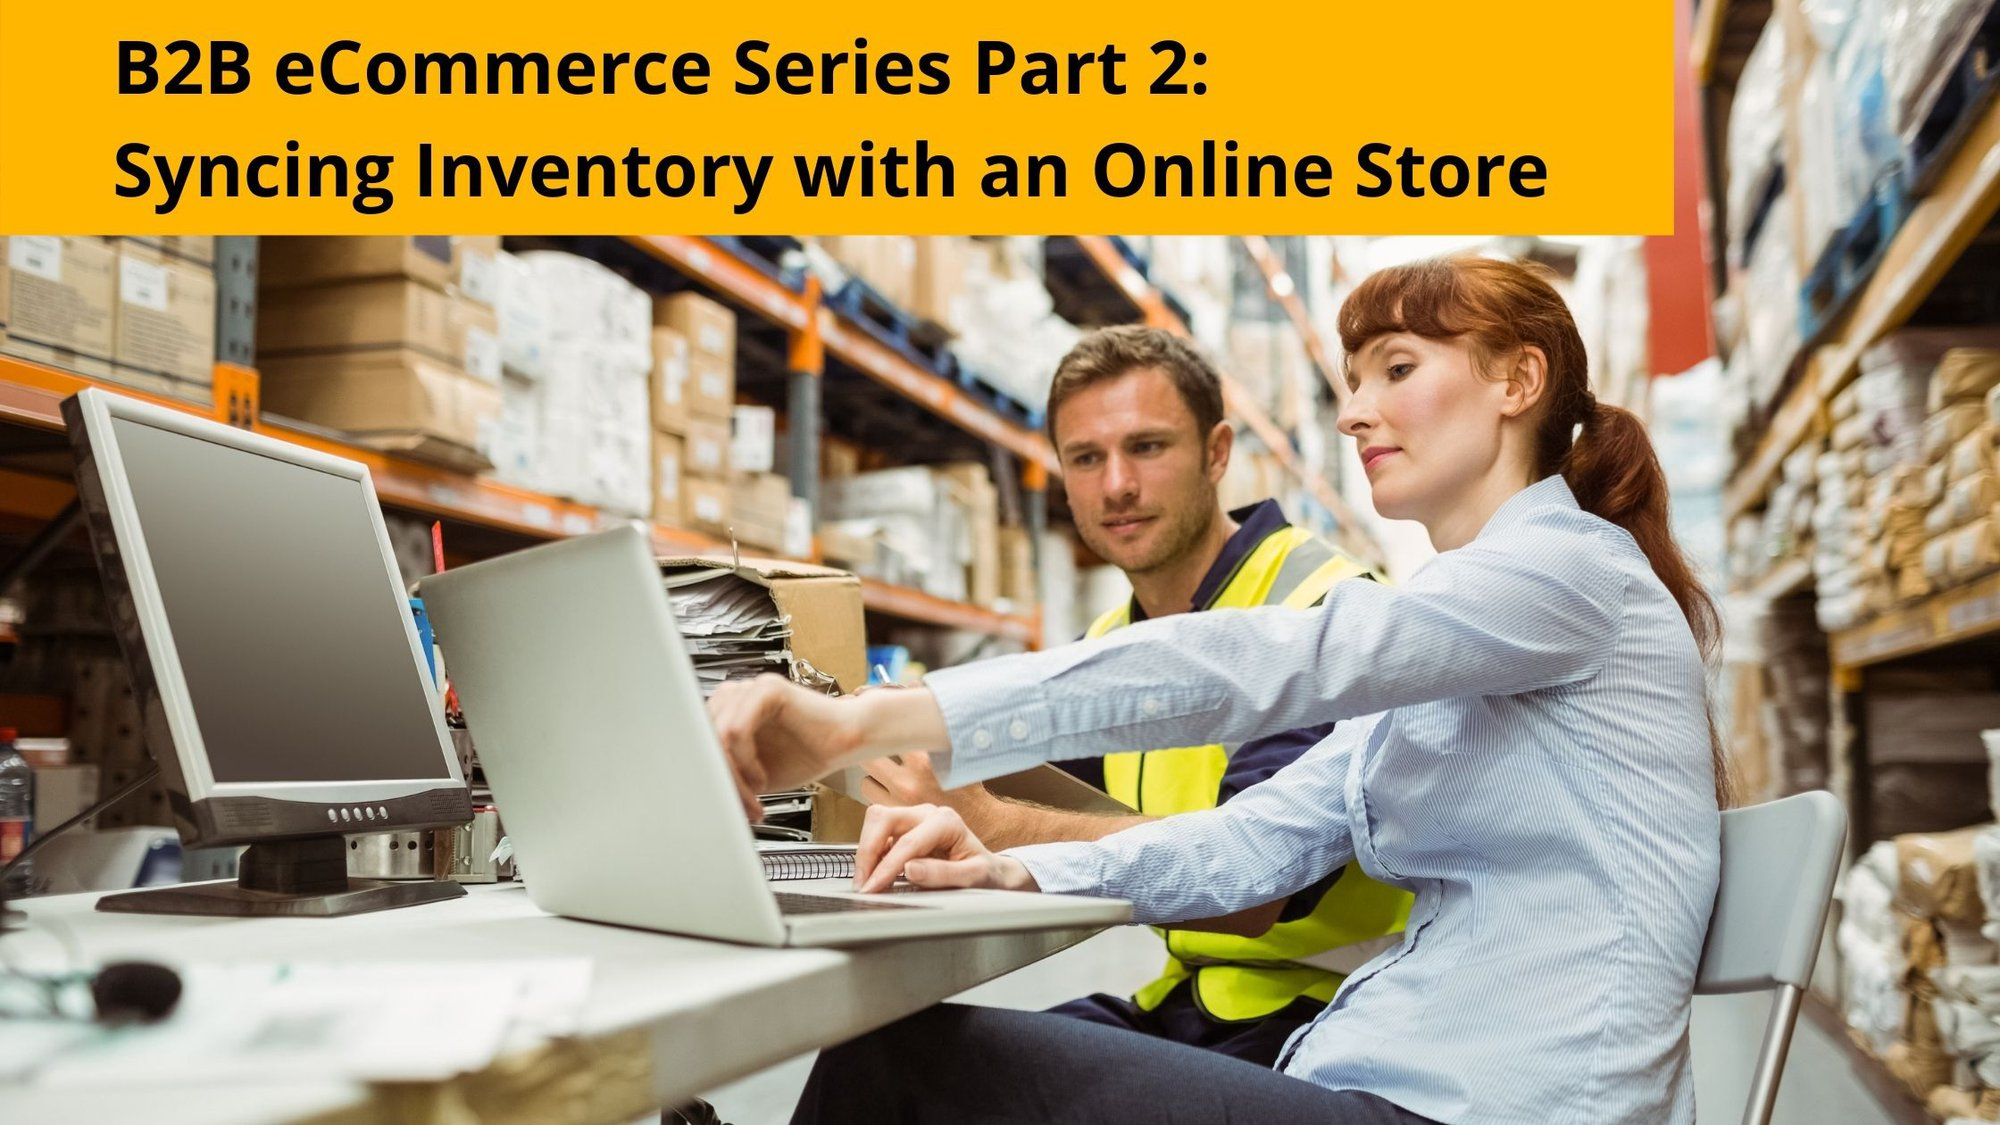 B2B eCommerce Series Part 2: Syncing Inventory with an Online Store